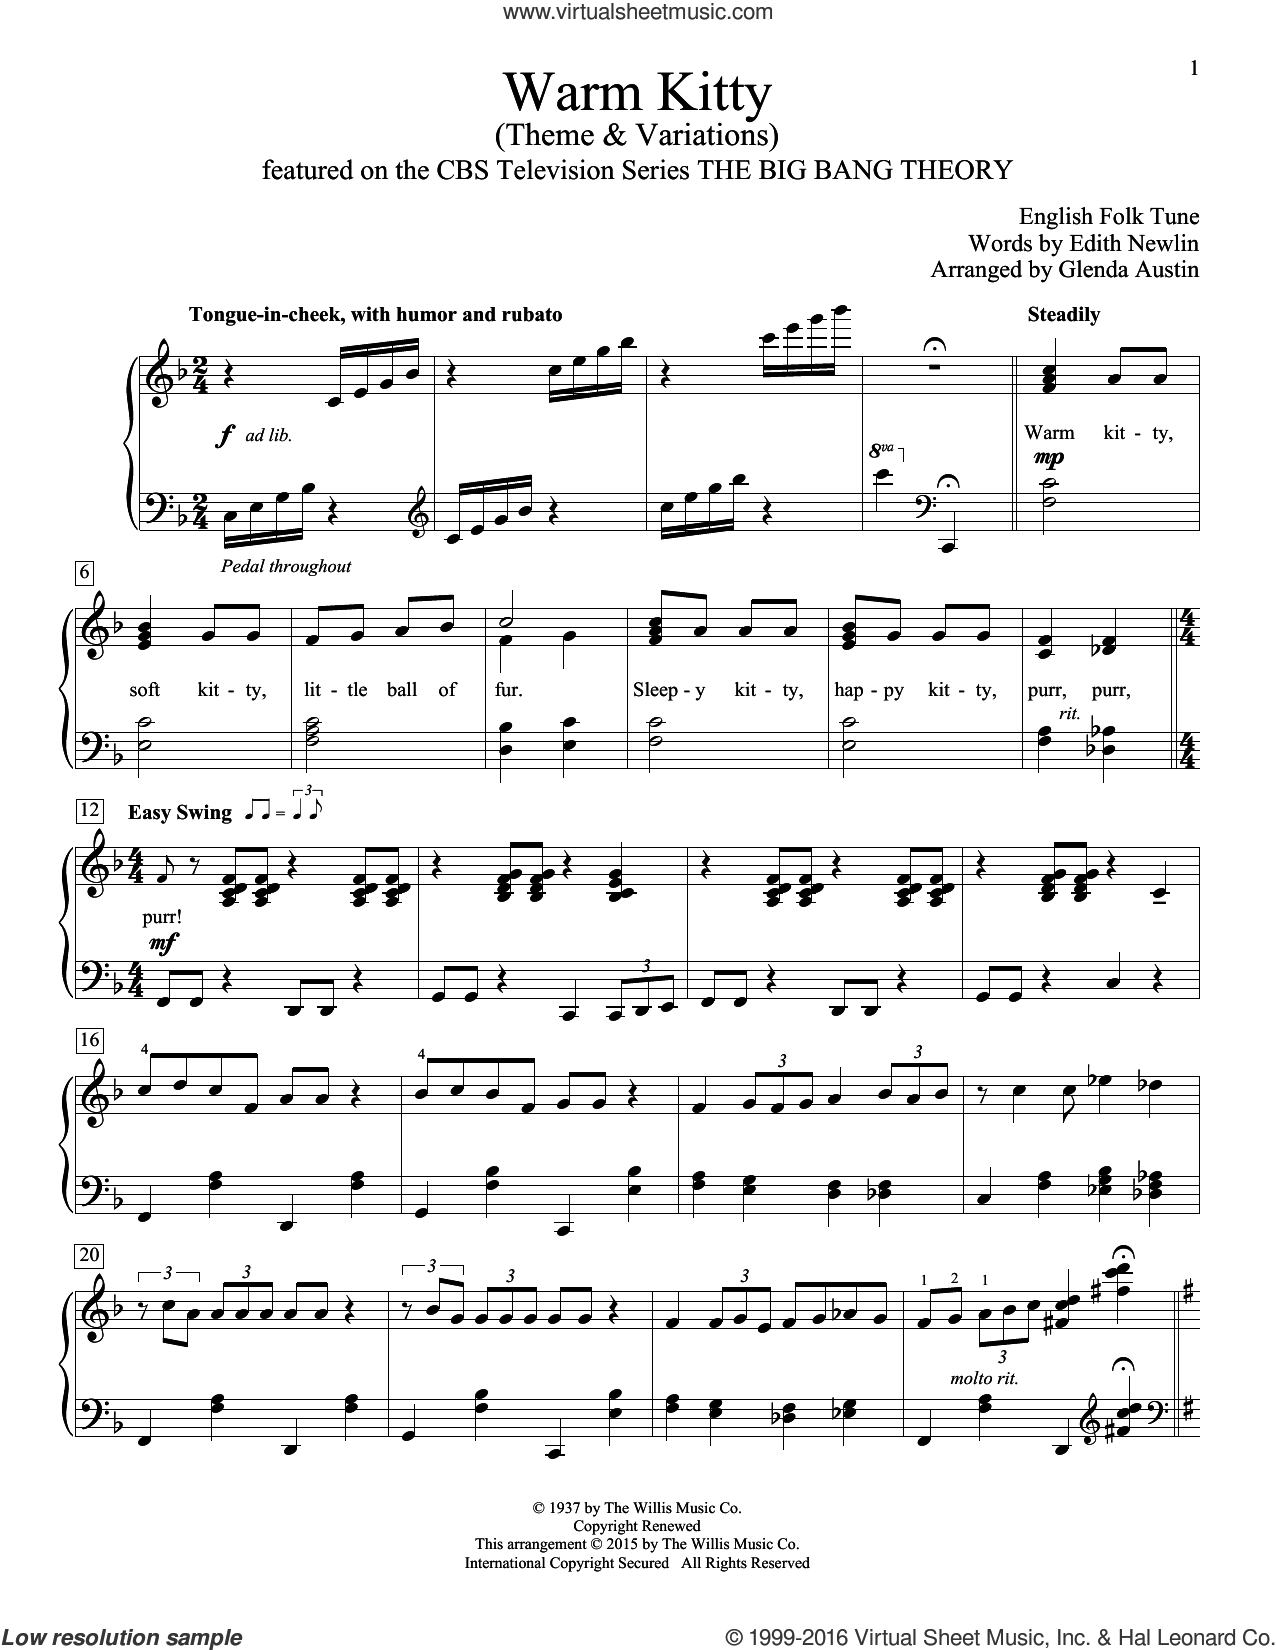 Warm Kitty sheet music for piano solo (elementary) by Glenda Austin